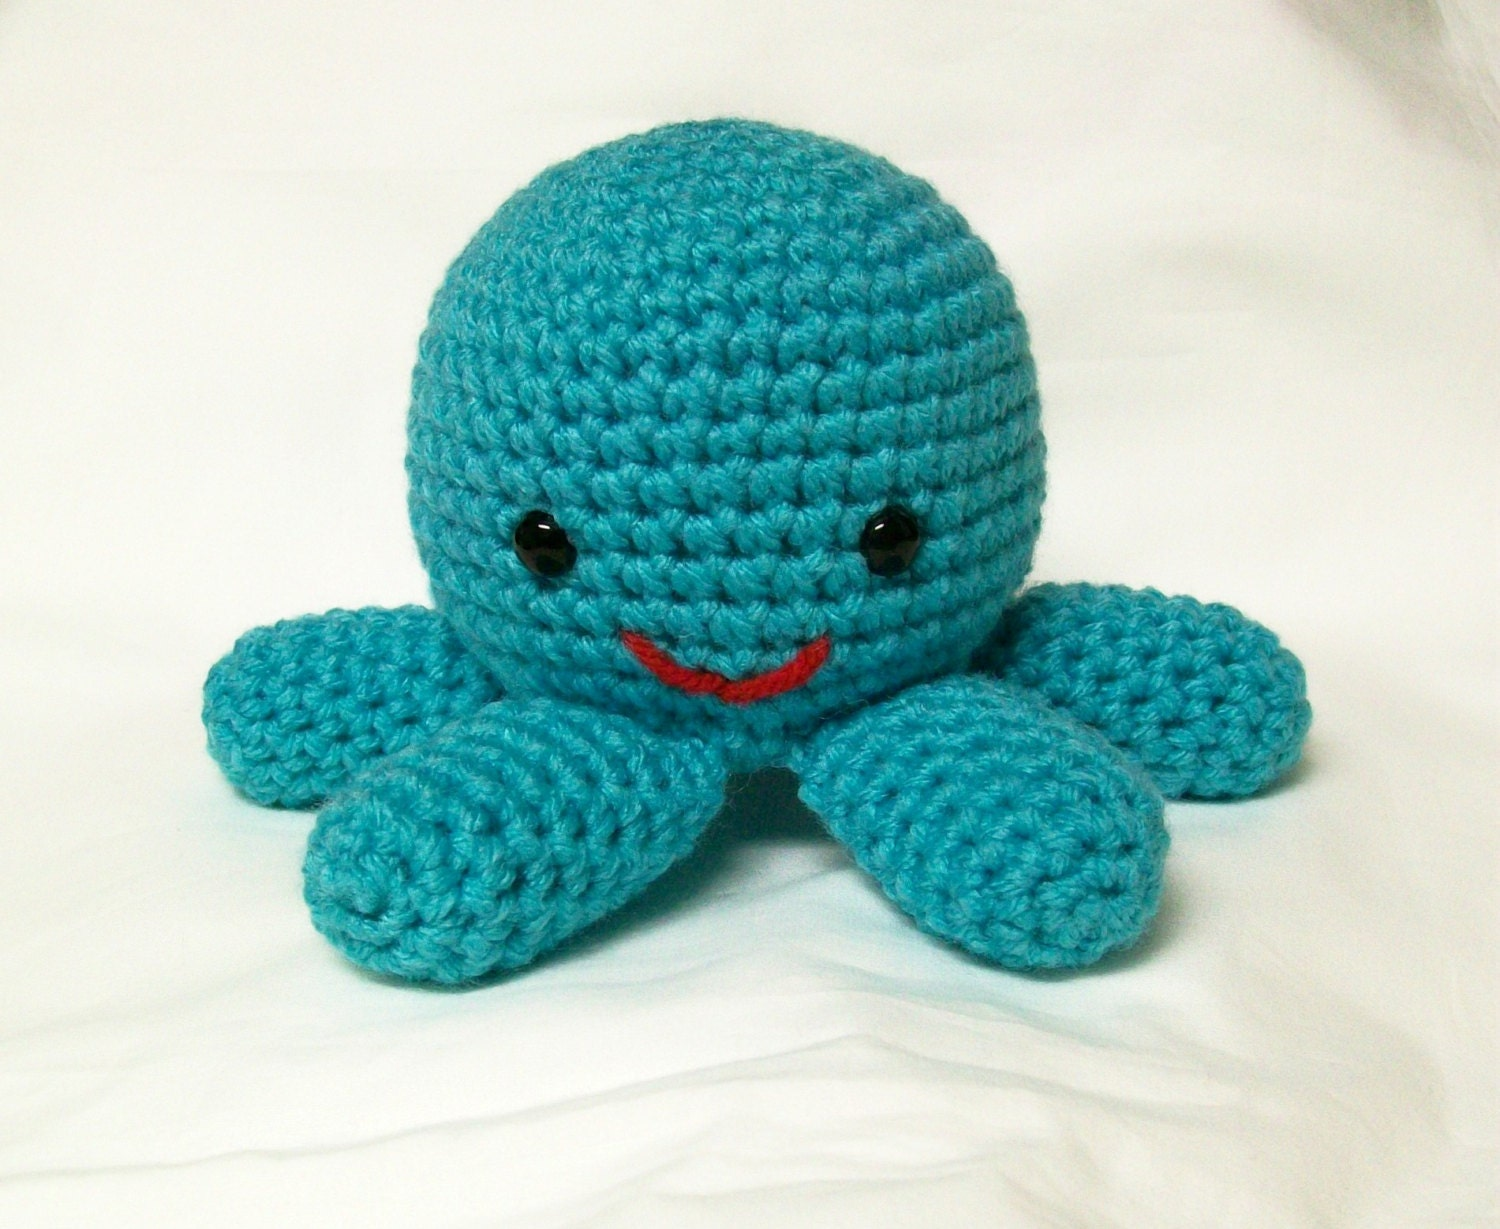 Octopus Stuffed Toy Plush Amigurumi Turquoise Aqua Blue